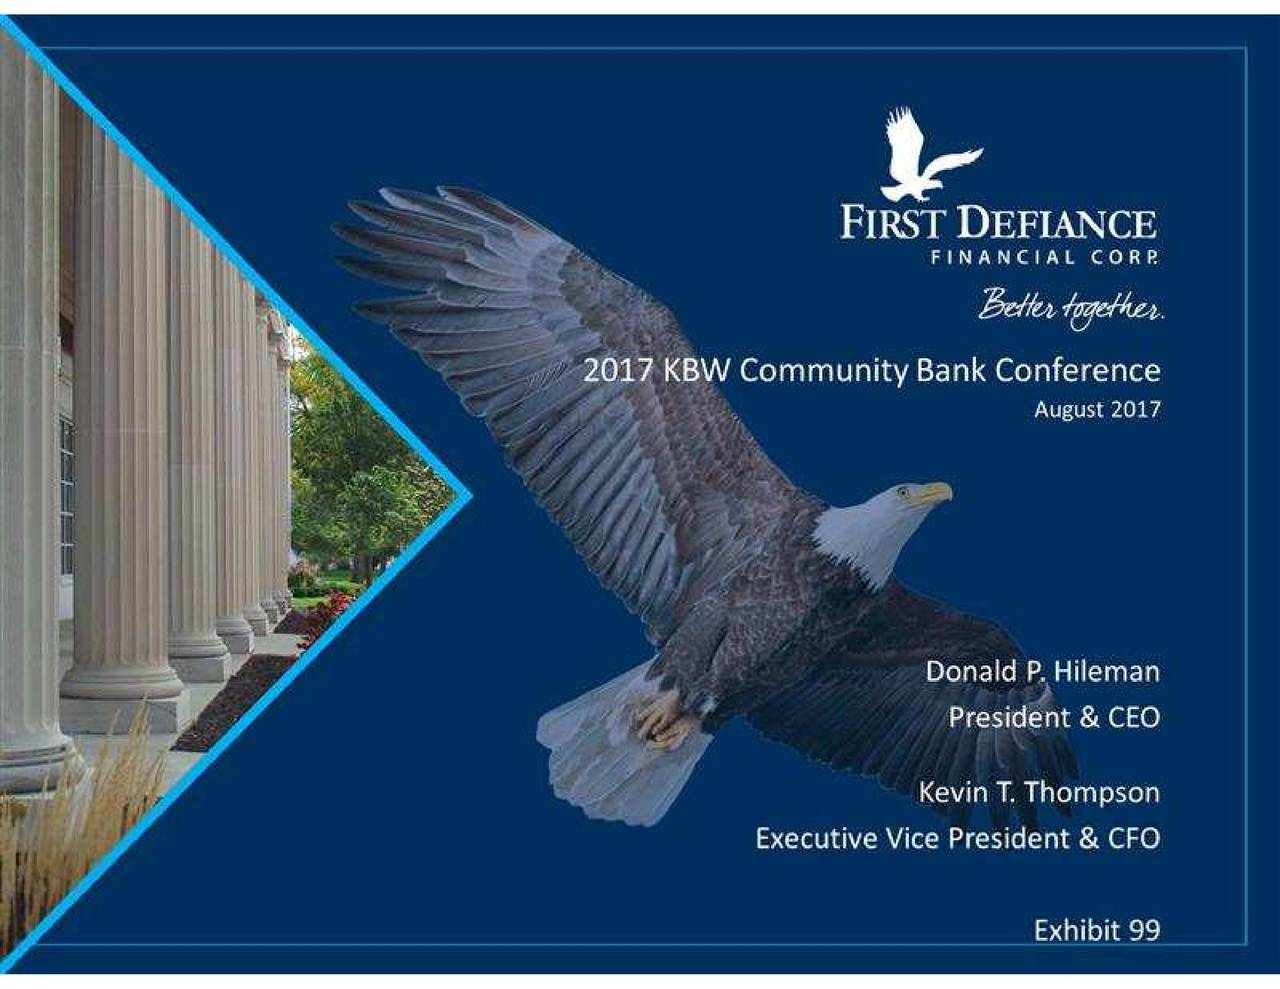 First Defiance Financial Fdef Presents At Kbw Community Bank Eagle Wing Diagram Of Bald Investor Conference Slideshow